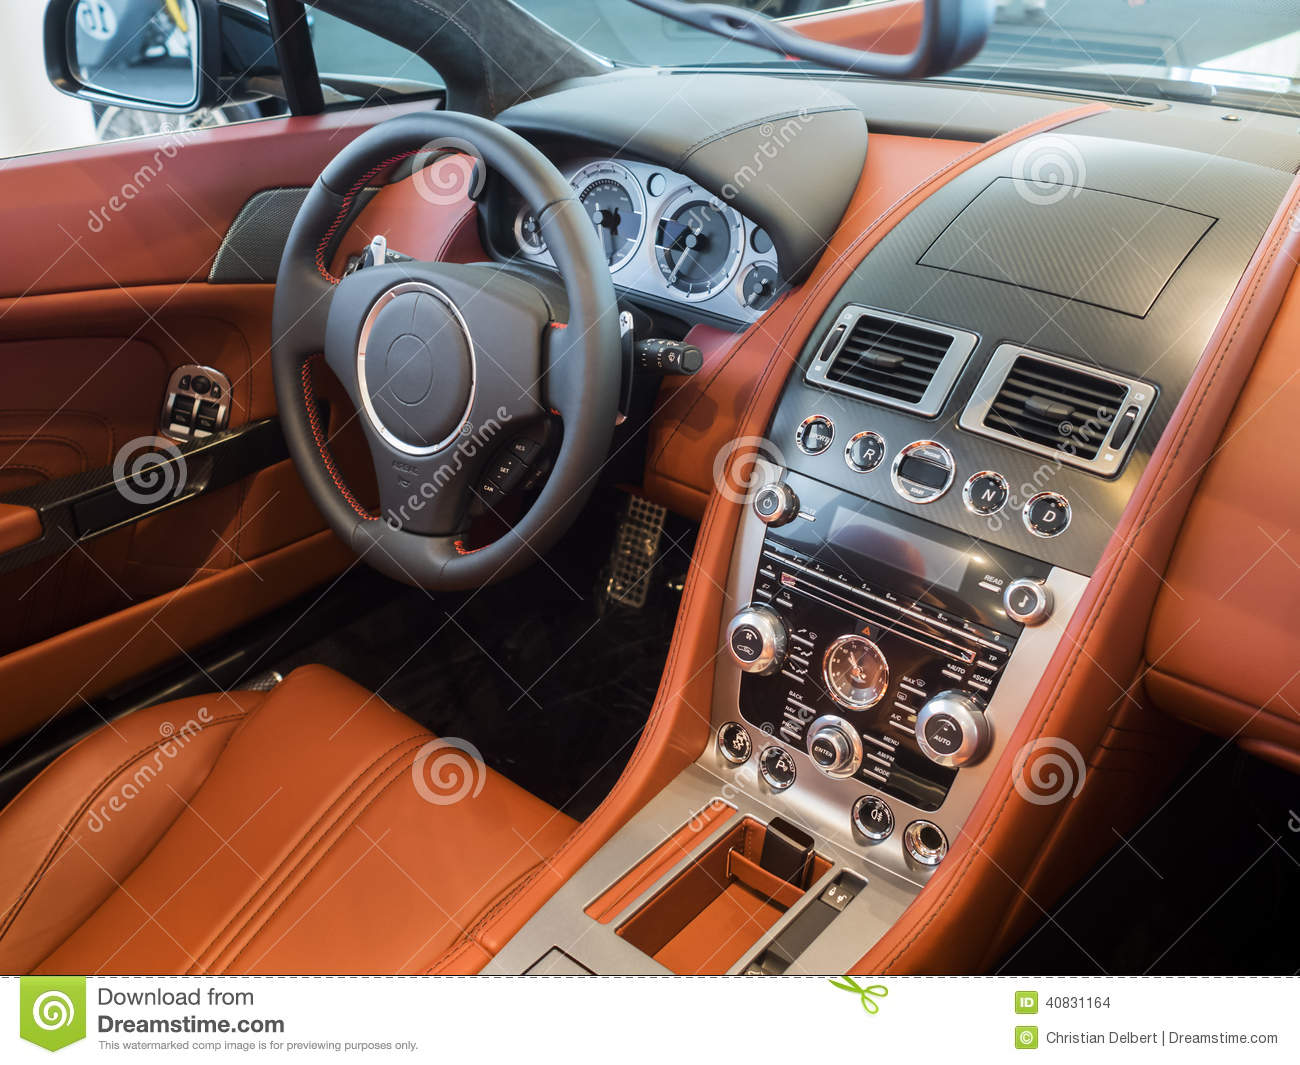 sportscar dashboard interior stock illustration image 40831164. Black Bedroom Furniture Sets. Home Design Ideas